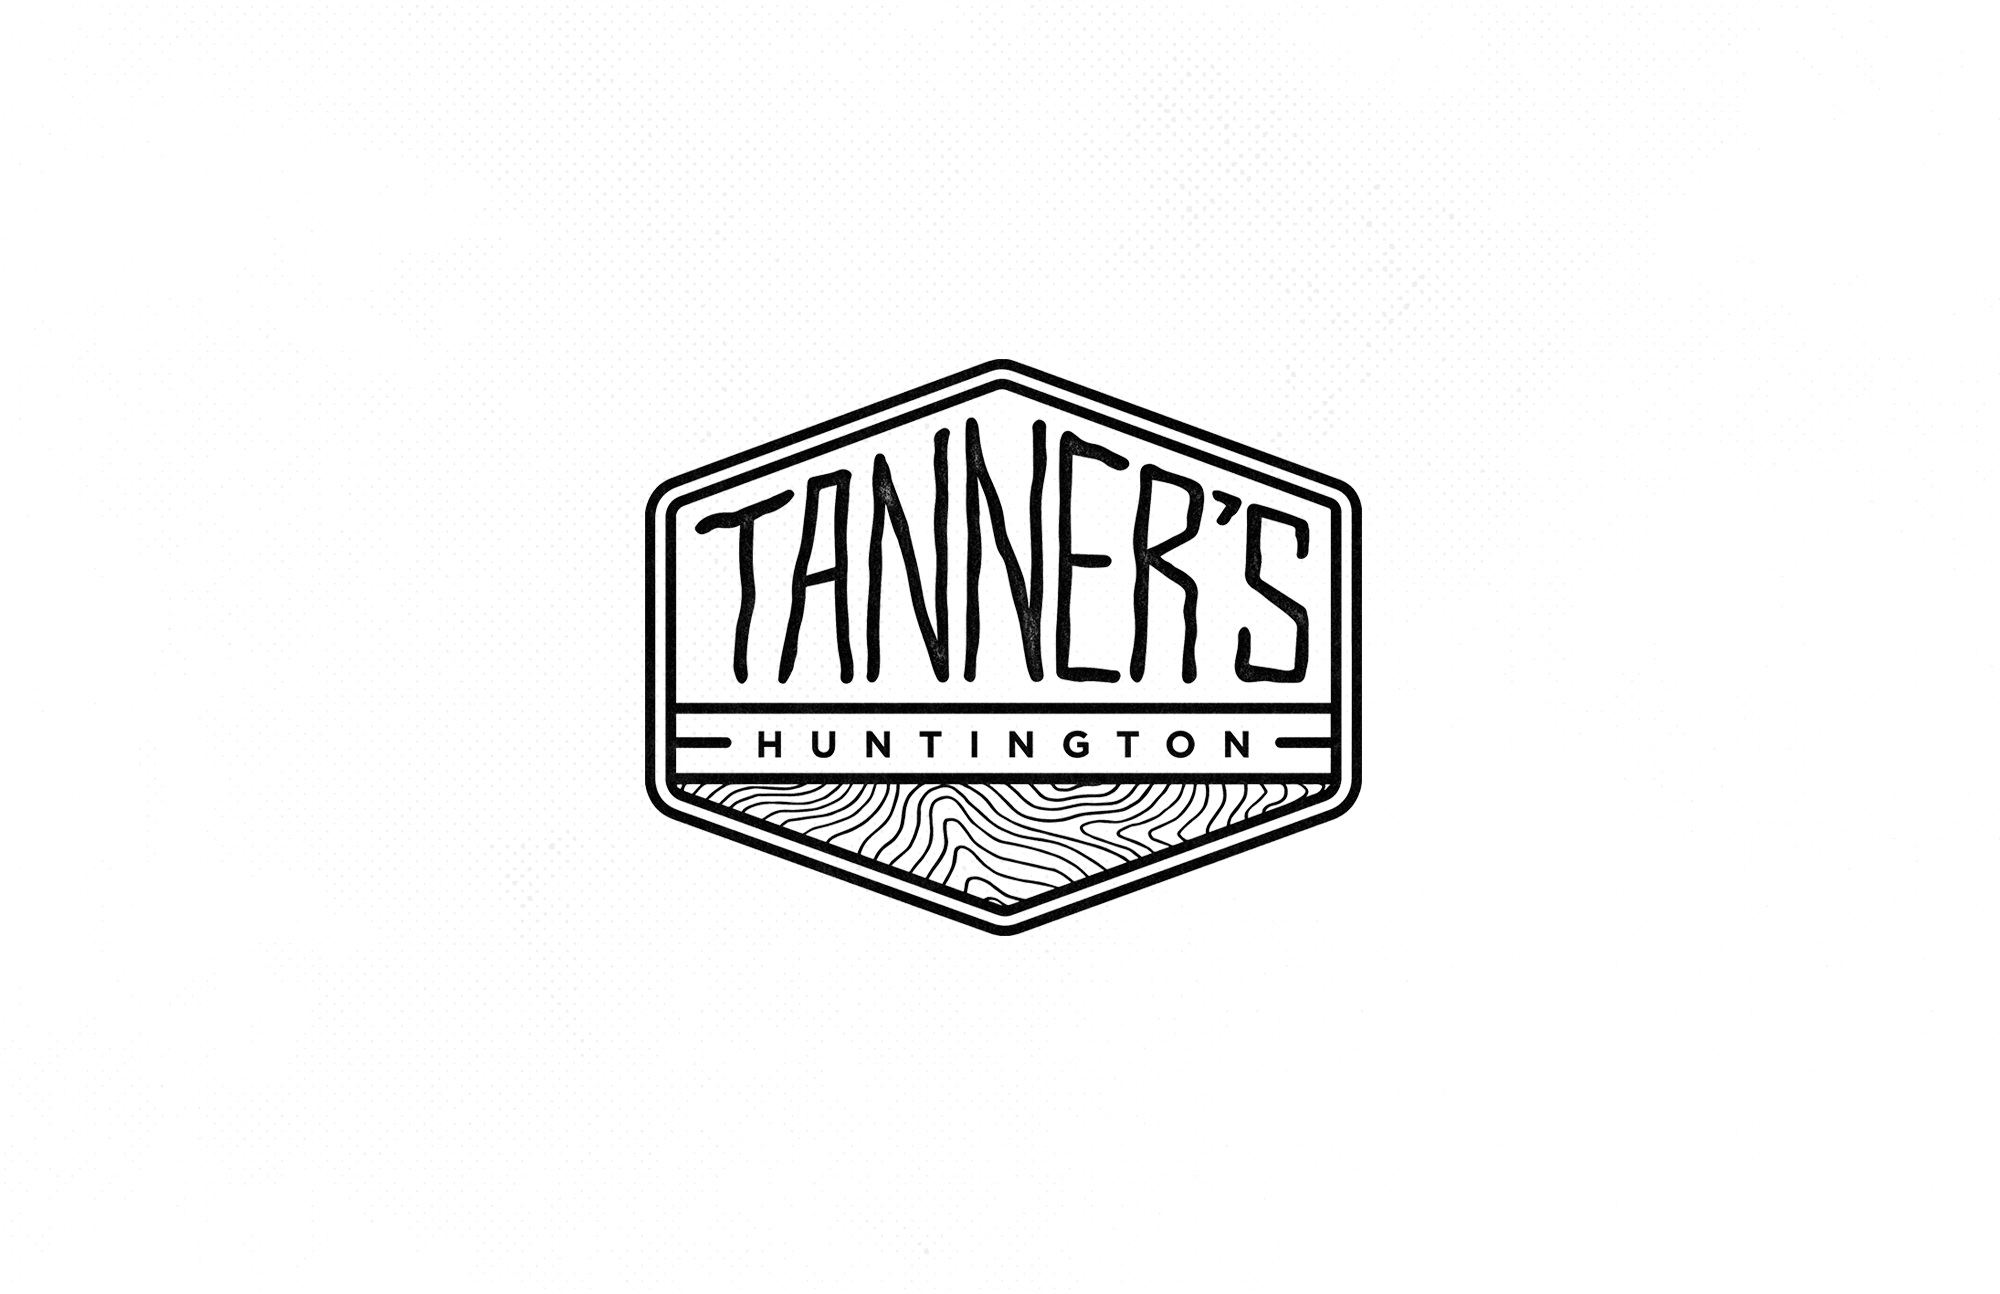 002_Logo_Tanners_2